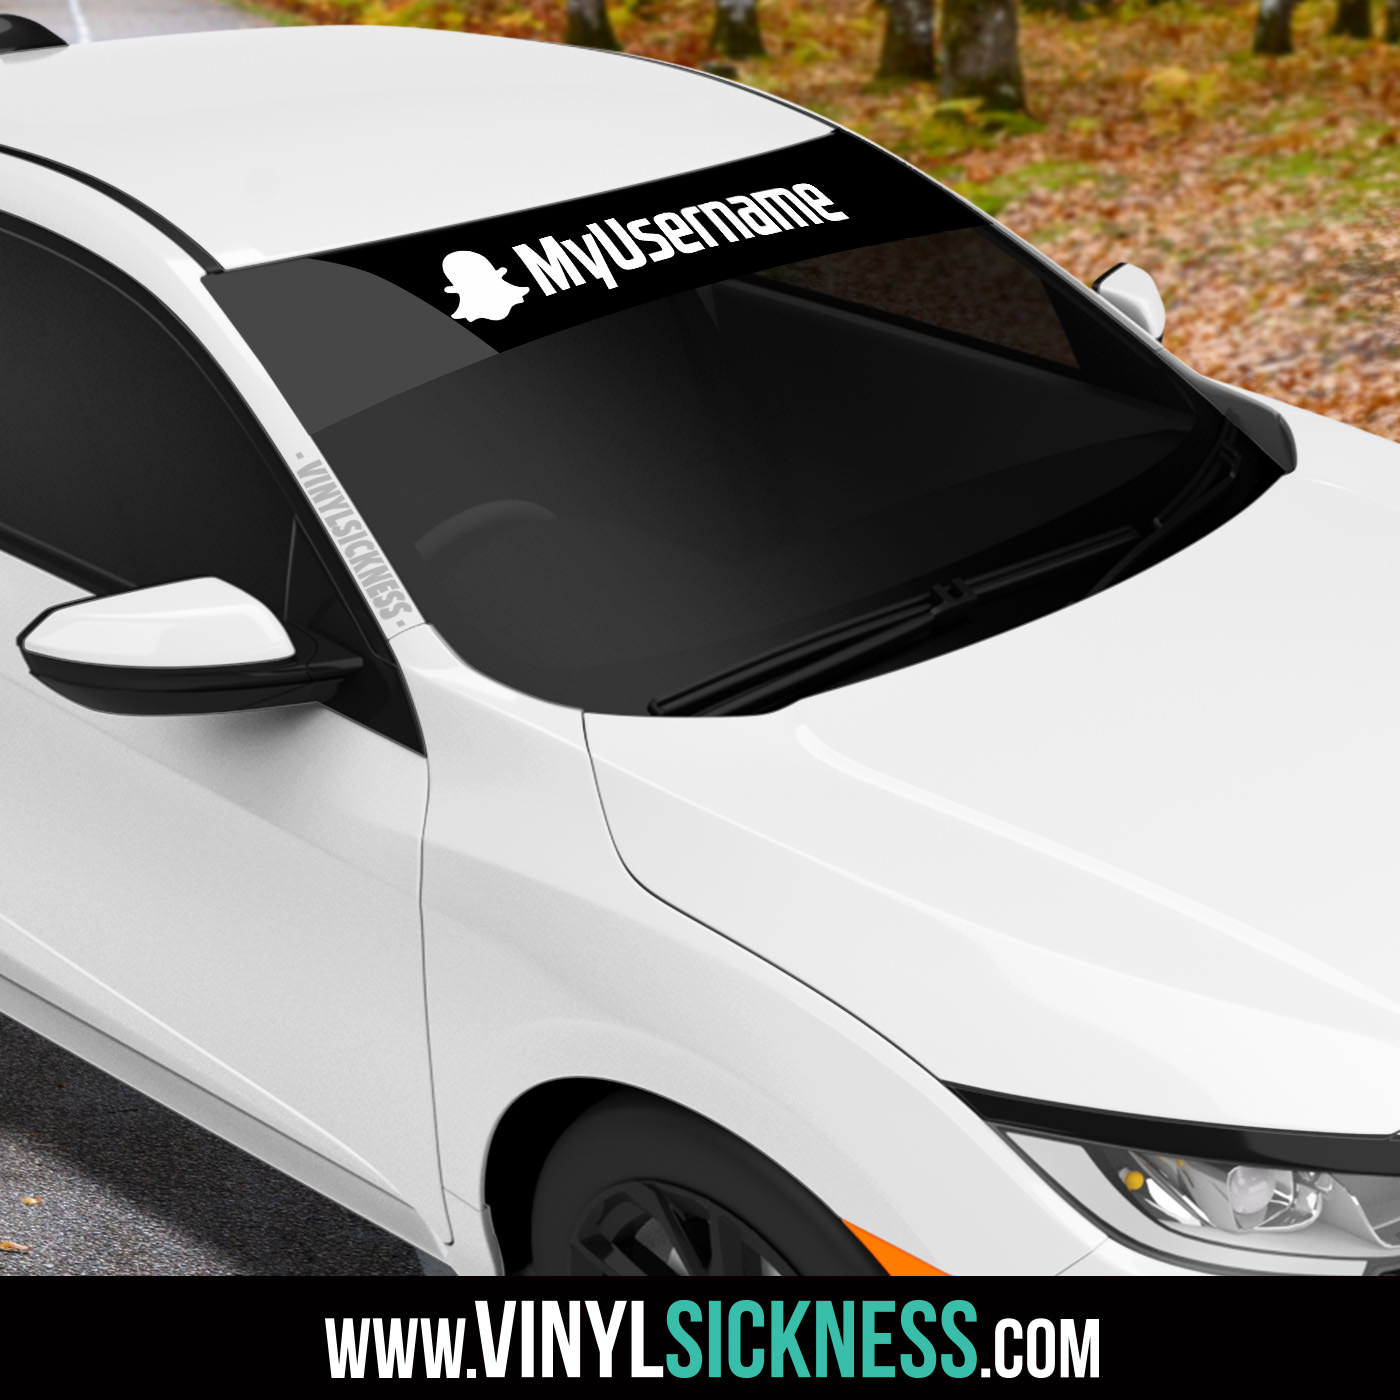 Custom snapchat decal sticker windshield sample custom snapchat decal sticker windshield sample